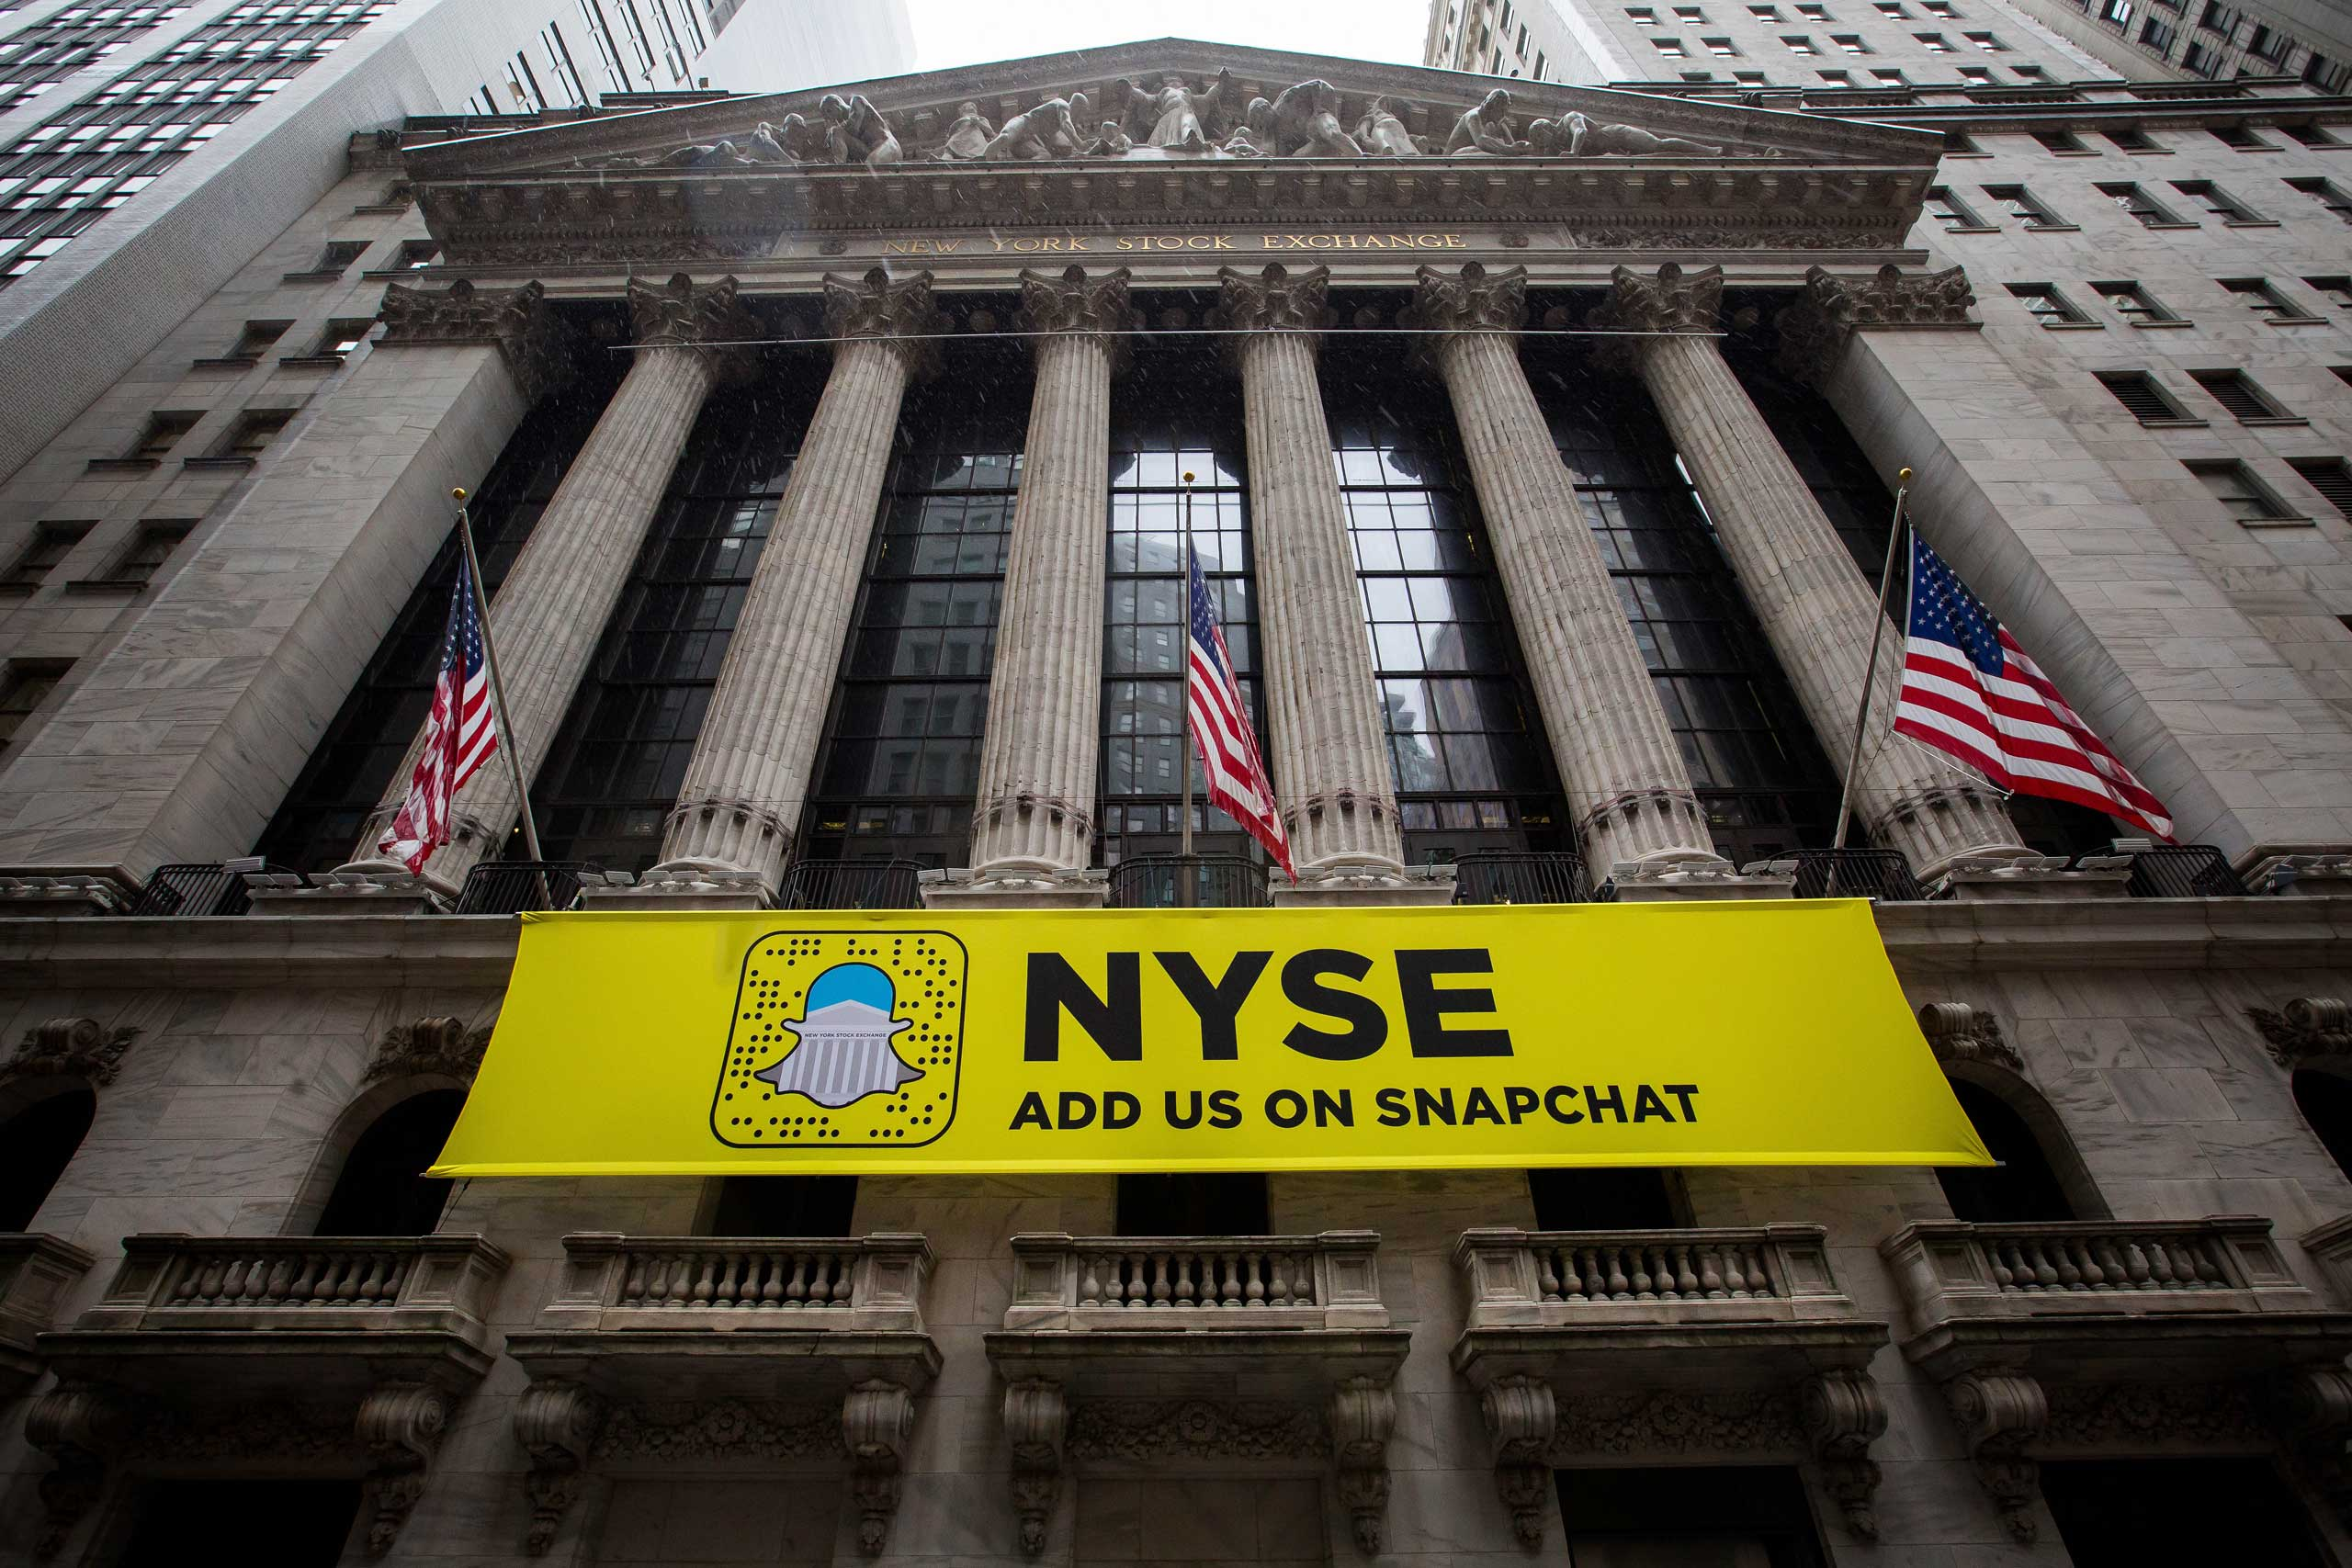 American flags fly above a Snapchat sign displayed outside of the New York Stock Exchange (NYSE) stands in New York, on Oct. 21, 2016.